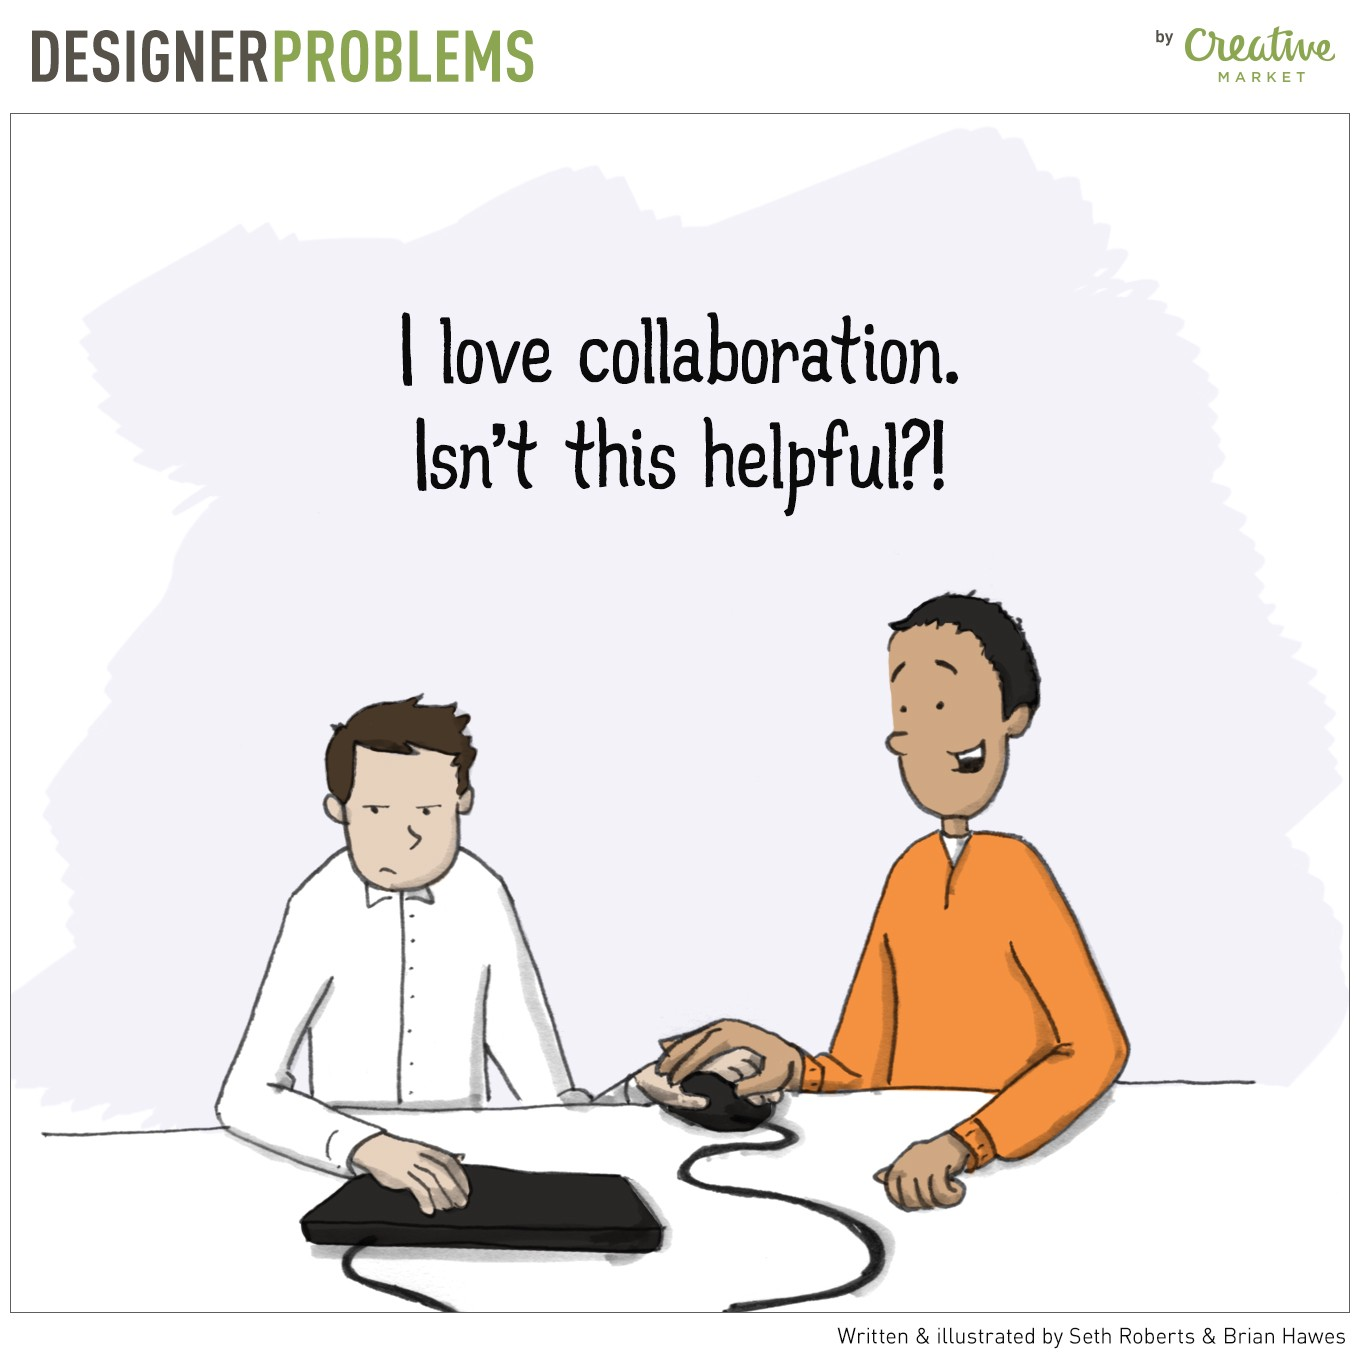 Two designers holding the mouse together, one looking disgruntled and the other smiling while praising collaboration.